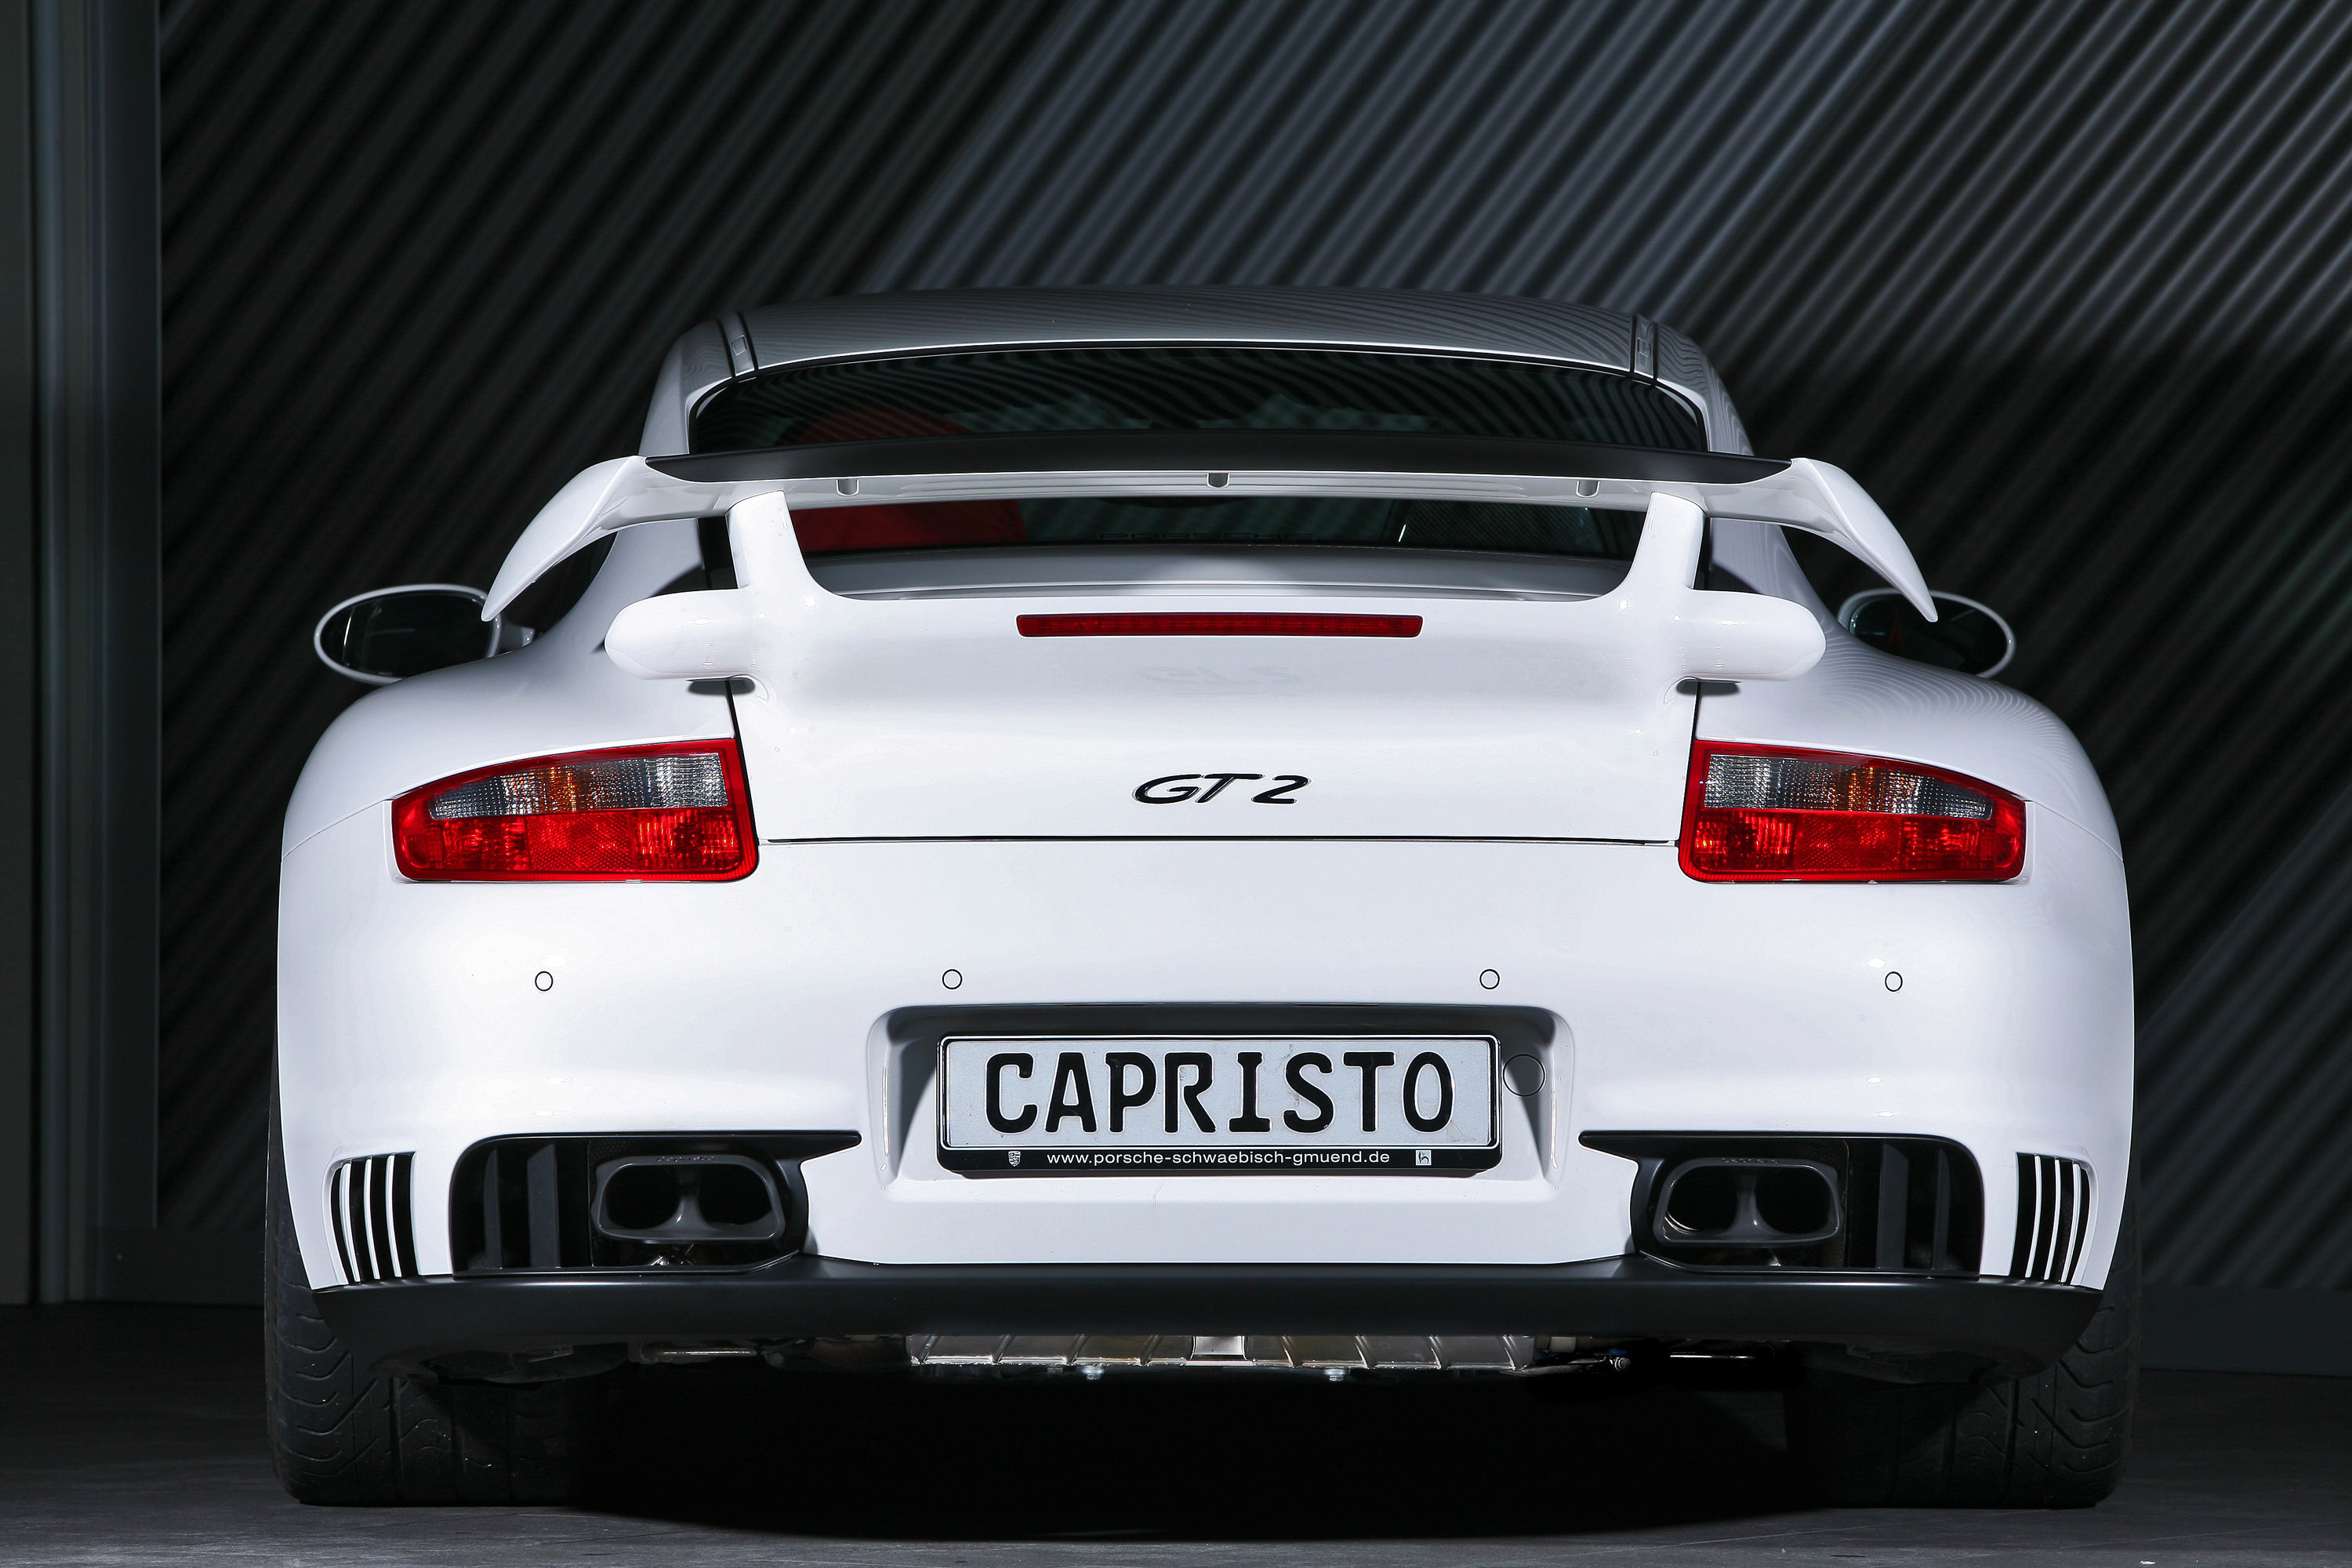 porsche 997 gt2 capristo exhaust picture 30310. Black Bedroom Furniture Sets. Home Design Ideas